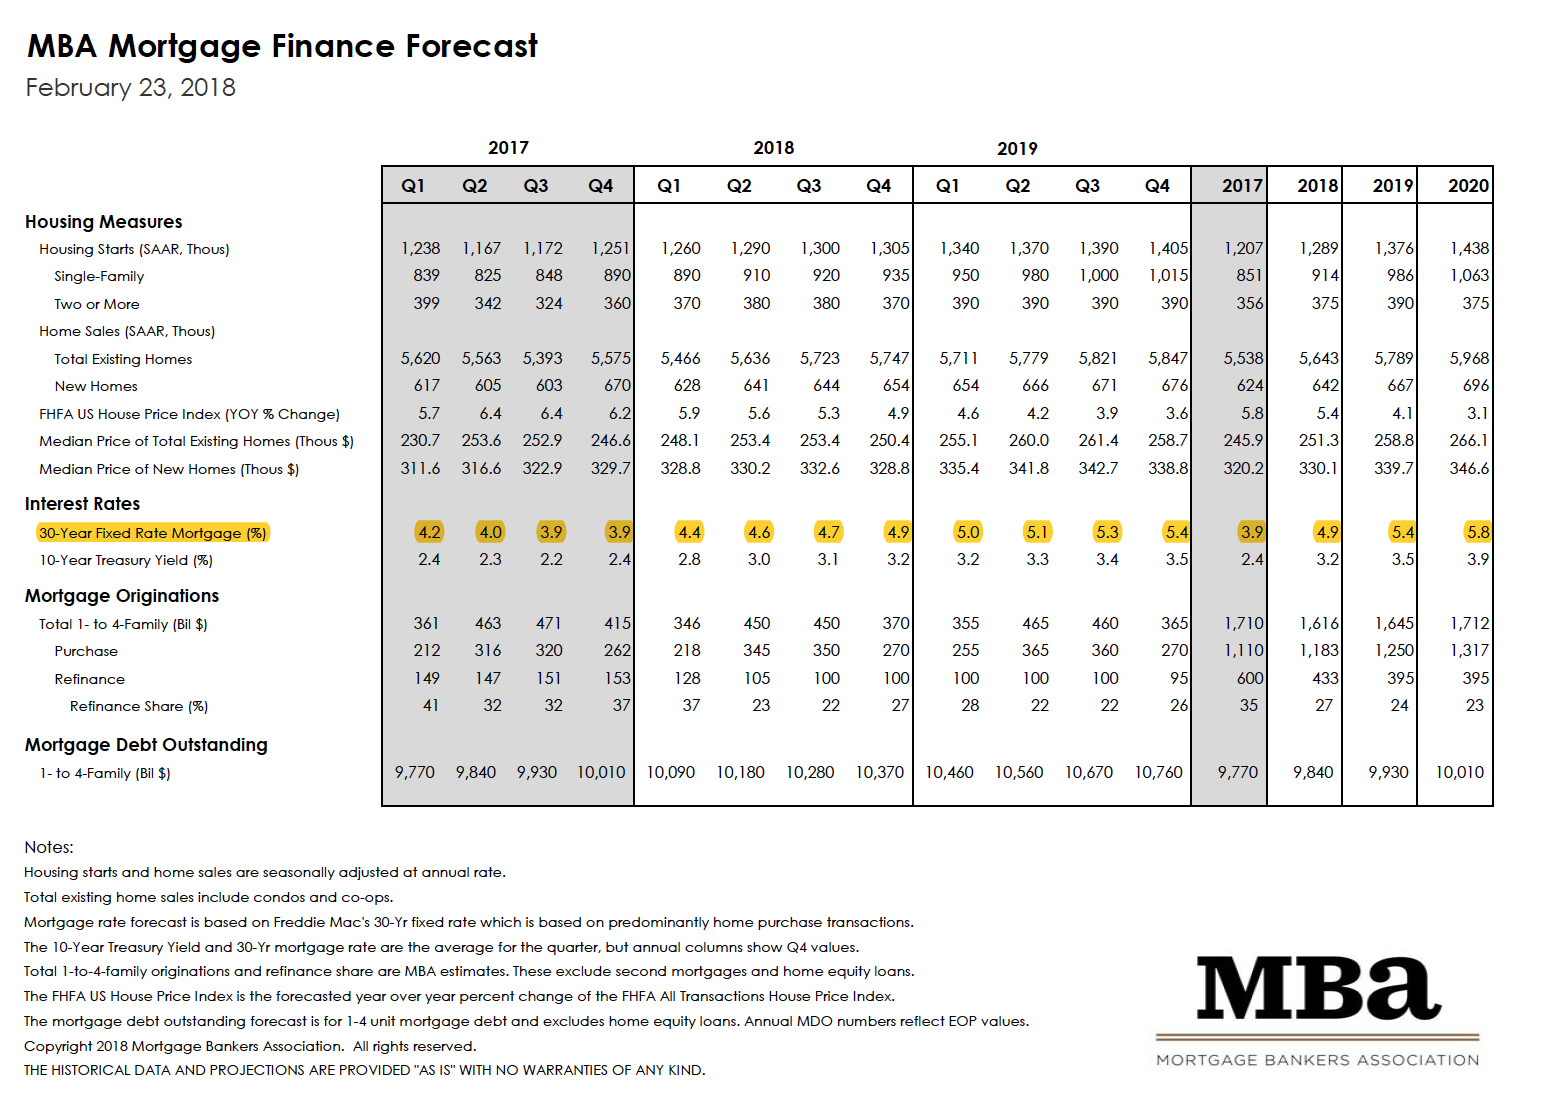 MBA Mortgage Finance Forecast - February